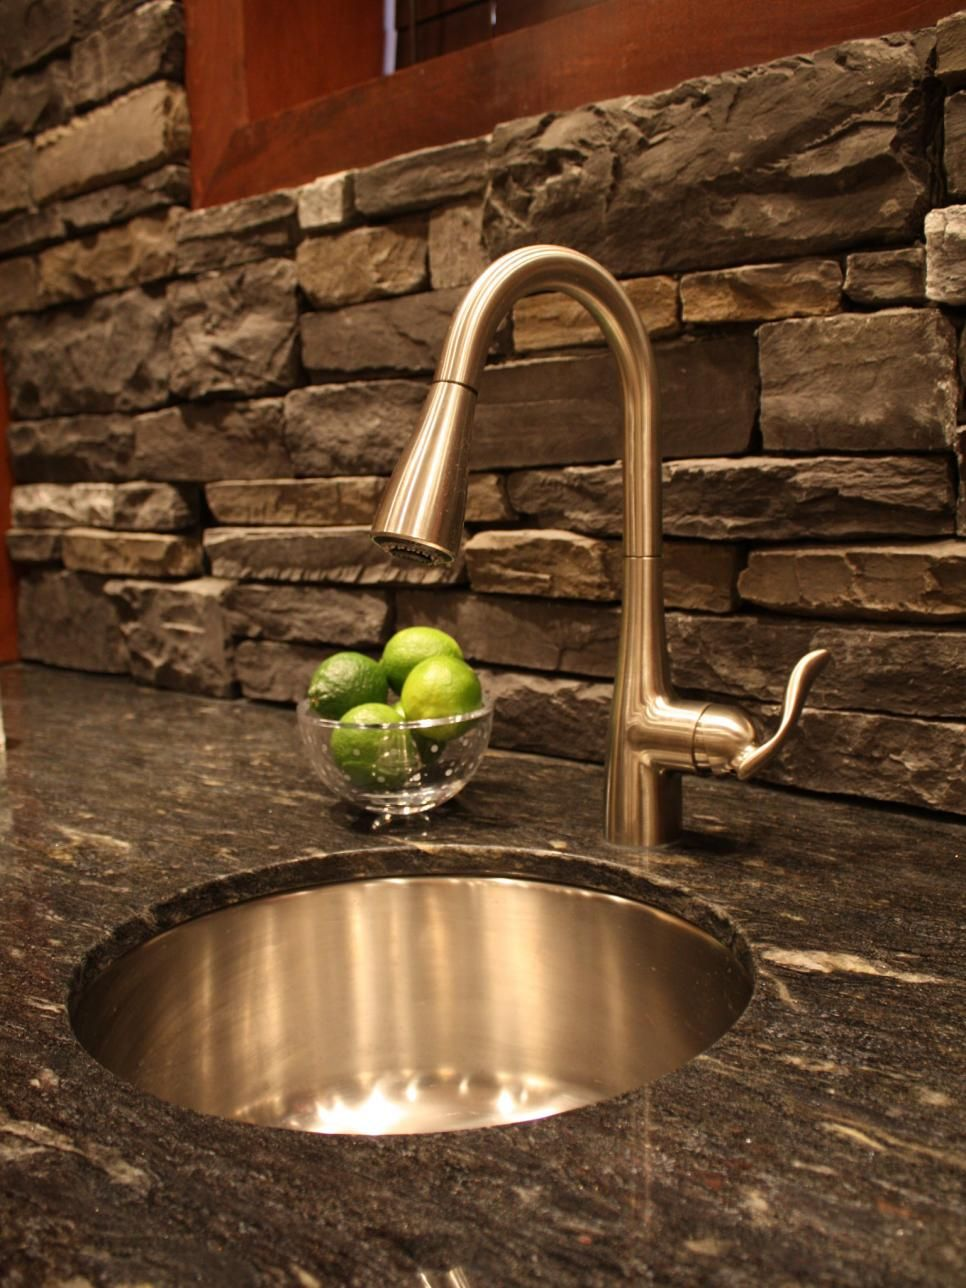 Kitchen Backsplash Rock 15 creative kitchen backsplash ideas | fire ants, basements and